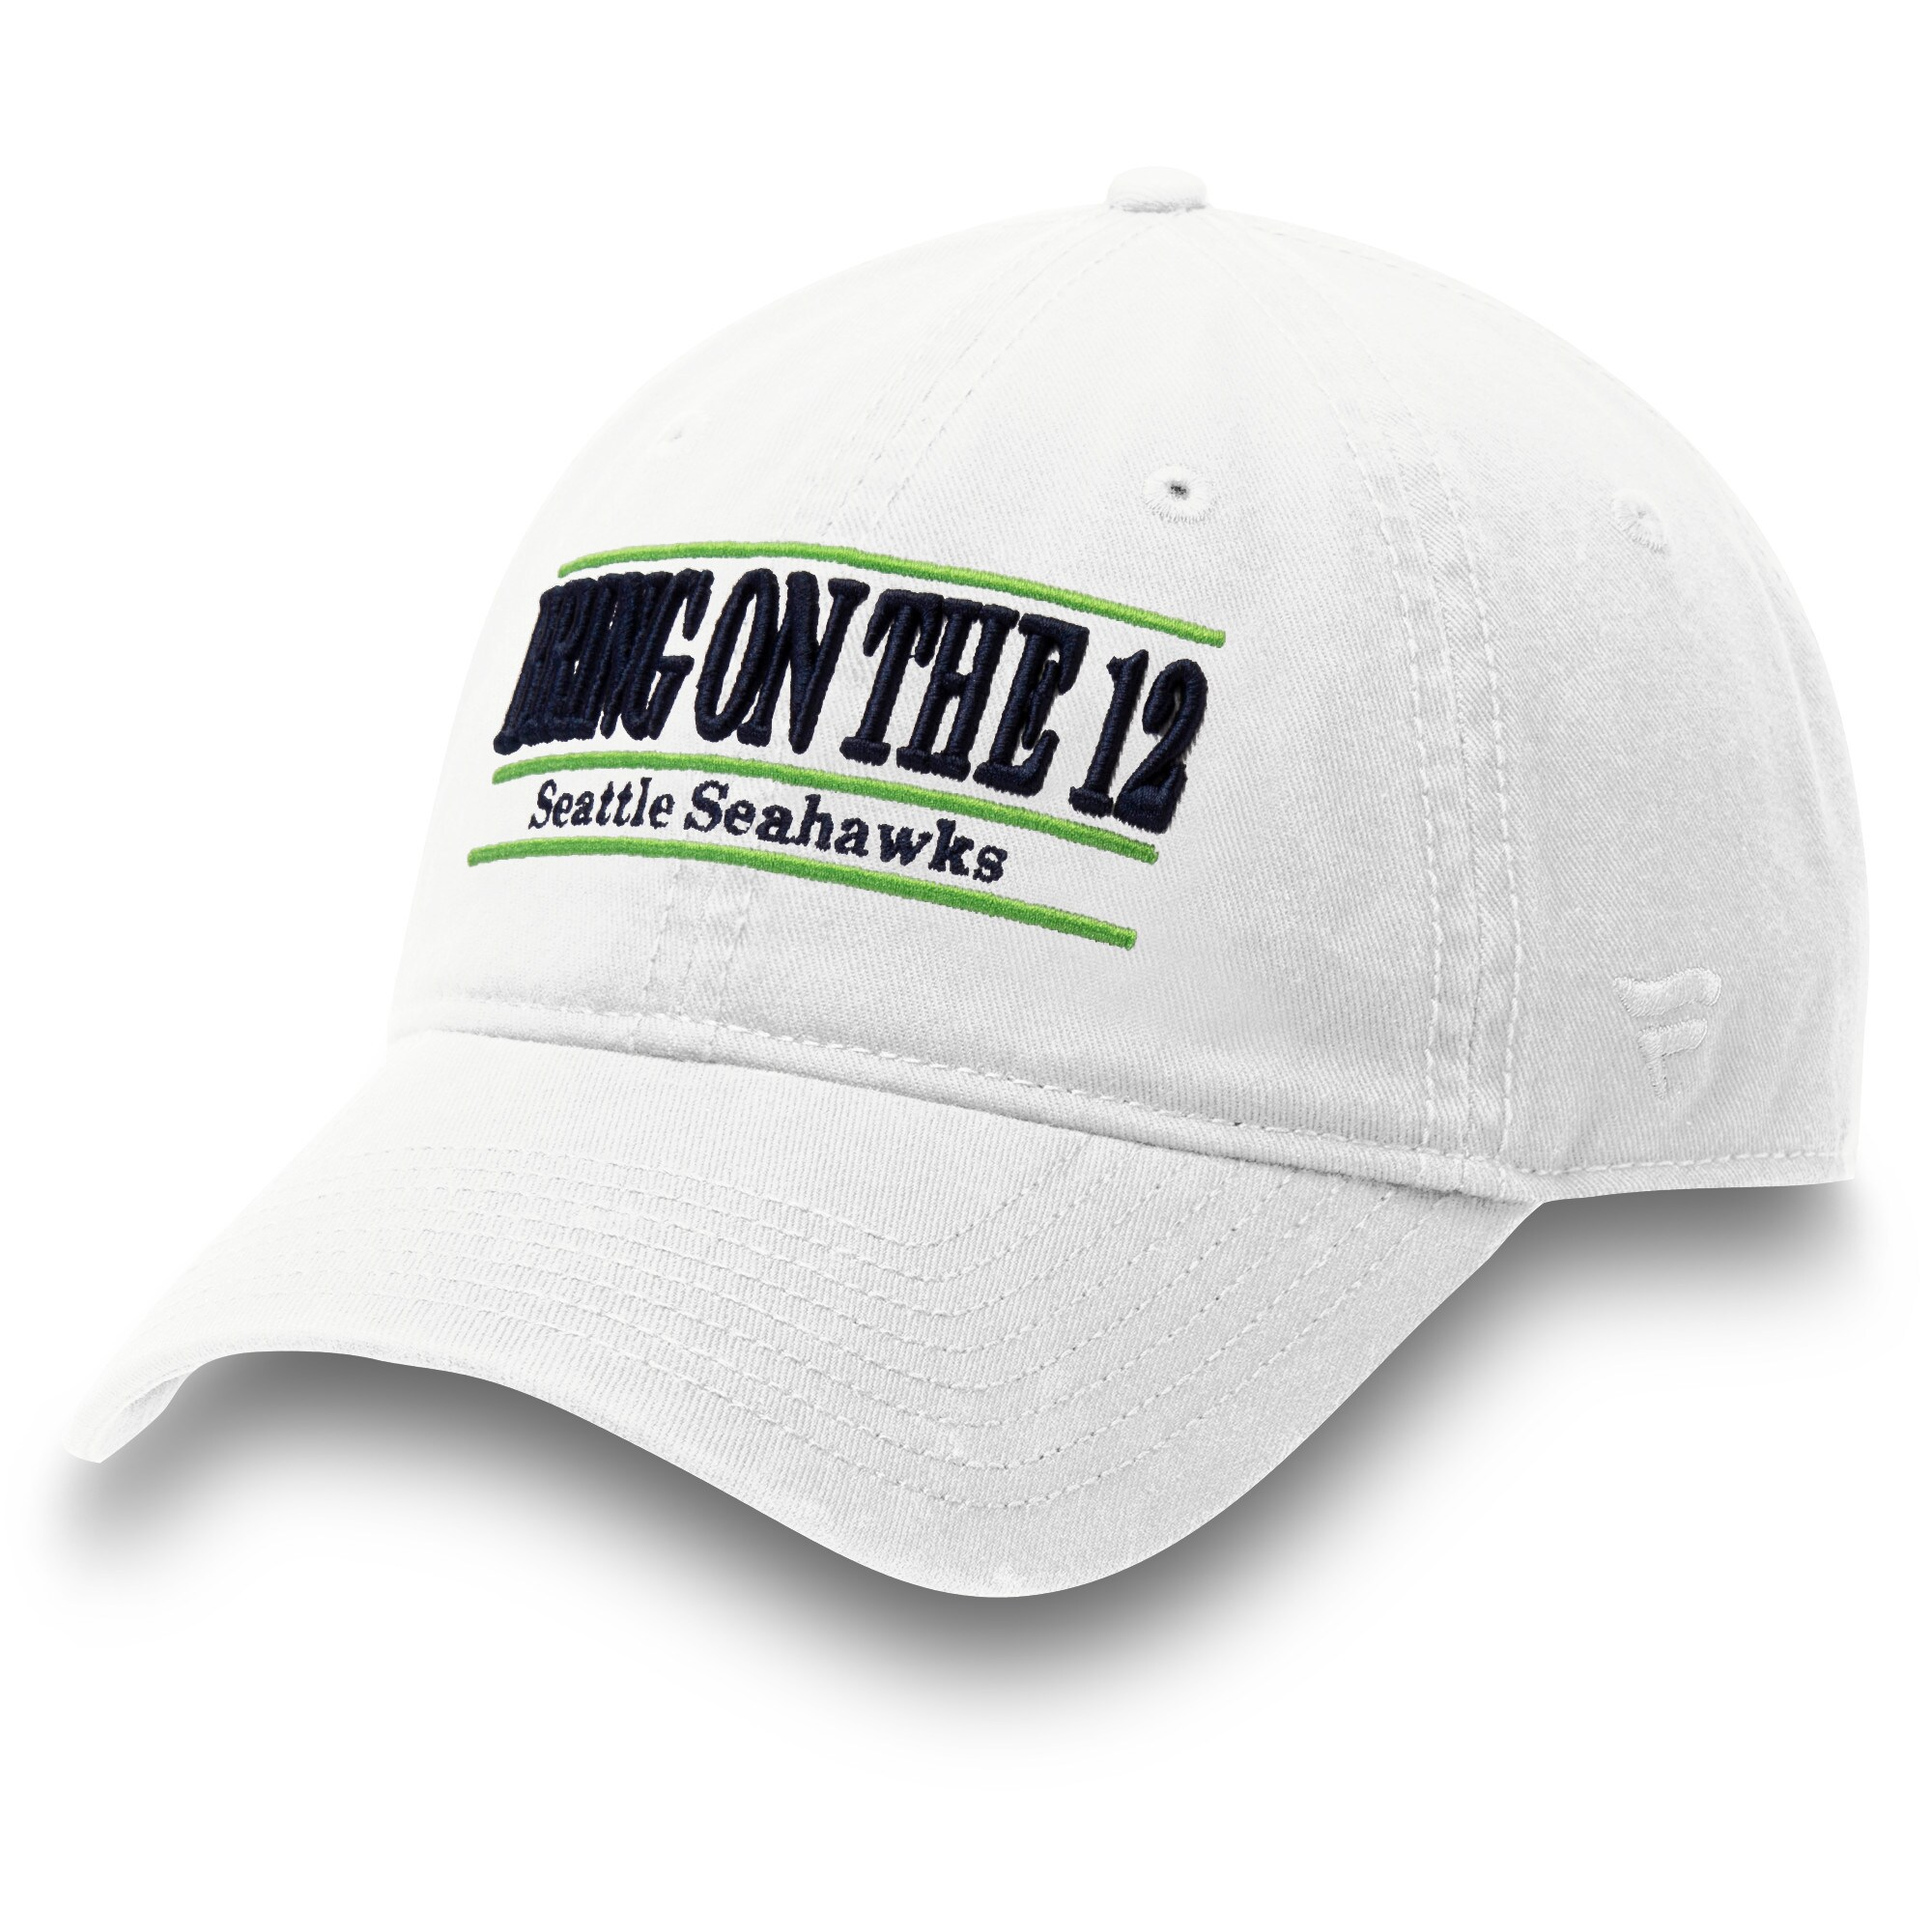 Seattle Seahawks NFL Pro Line by Fanatics Branded Bring On the 12 Nickname Bar Adjustable Hat - White